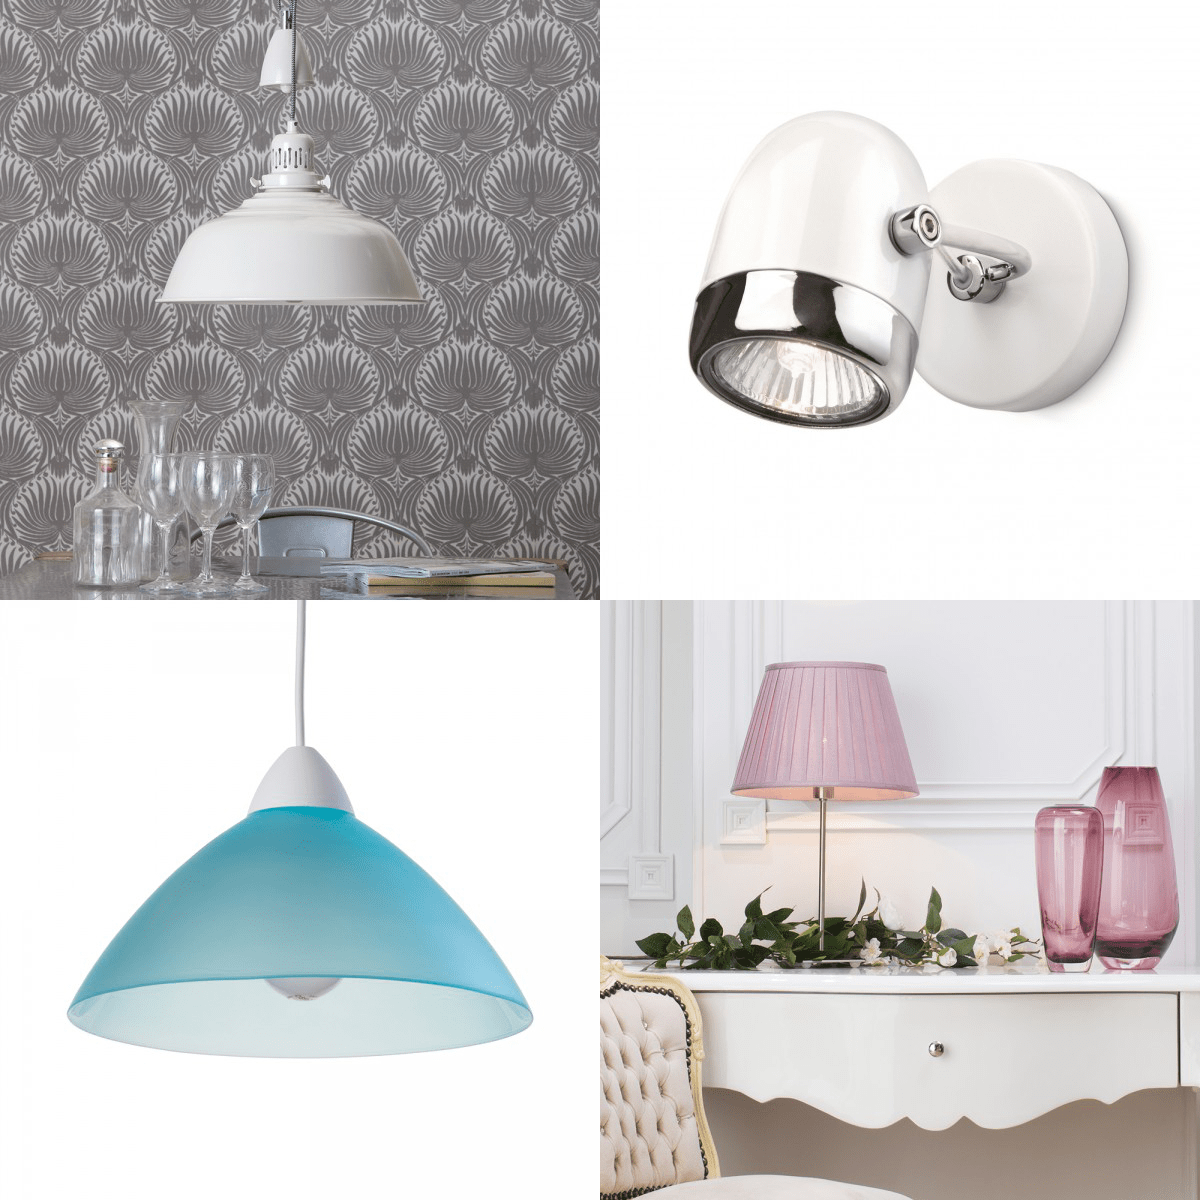 How to add character to your home with vintage style lighting